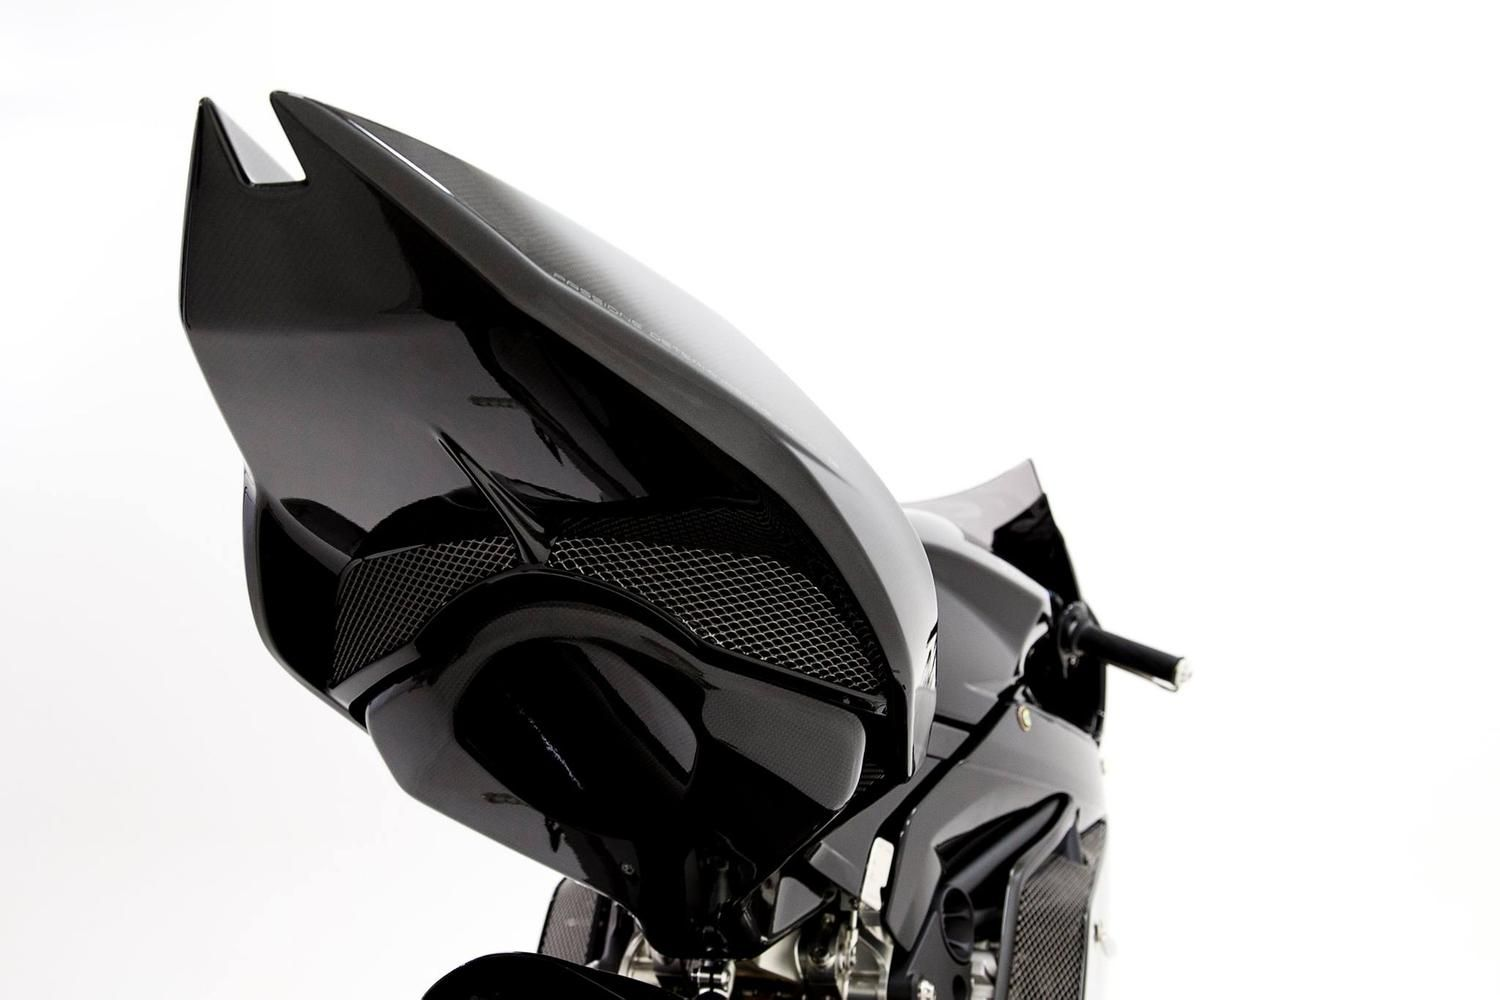 Late motorcycle designer Massimo Tamburini was responsible for some all-time classic designs, such as the revolutionary all-enclosed Ducati Paso 750. But before succumbing to lung cancer in 2014, the mastermind created one last gift for high-end bike enthusiasts: his own no-expense-spared vision of the perfect sport bike. Started by the master and finished by his son, two prototypes exist for those who can afford the bike's $342,000 price tag.